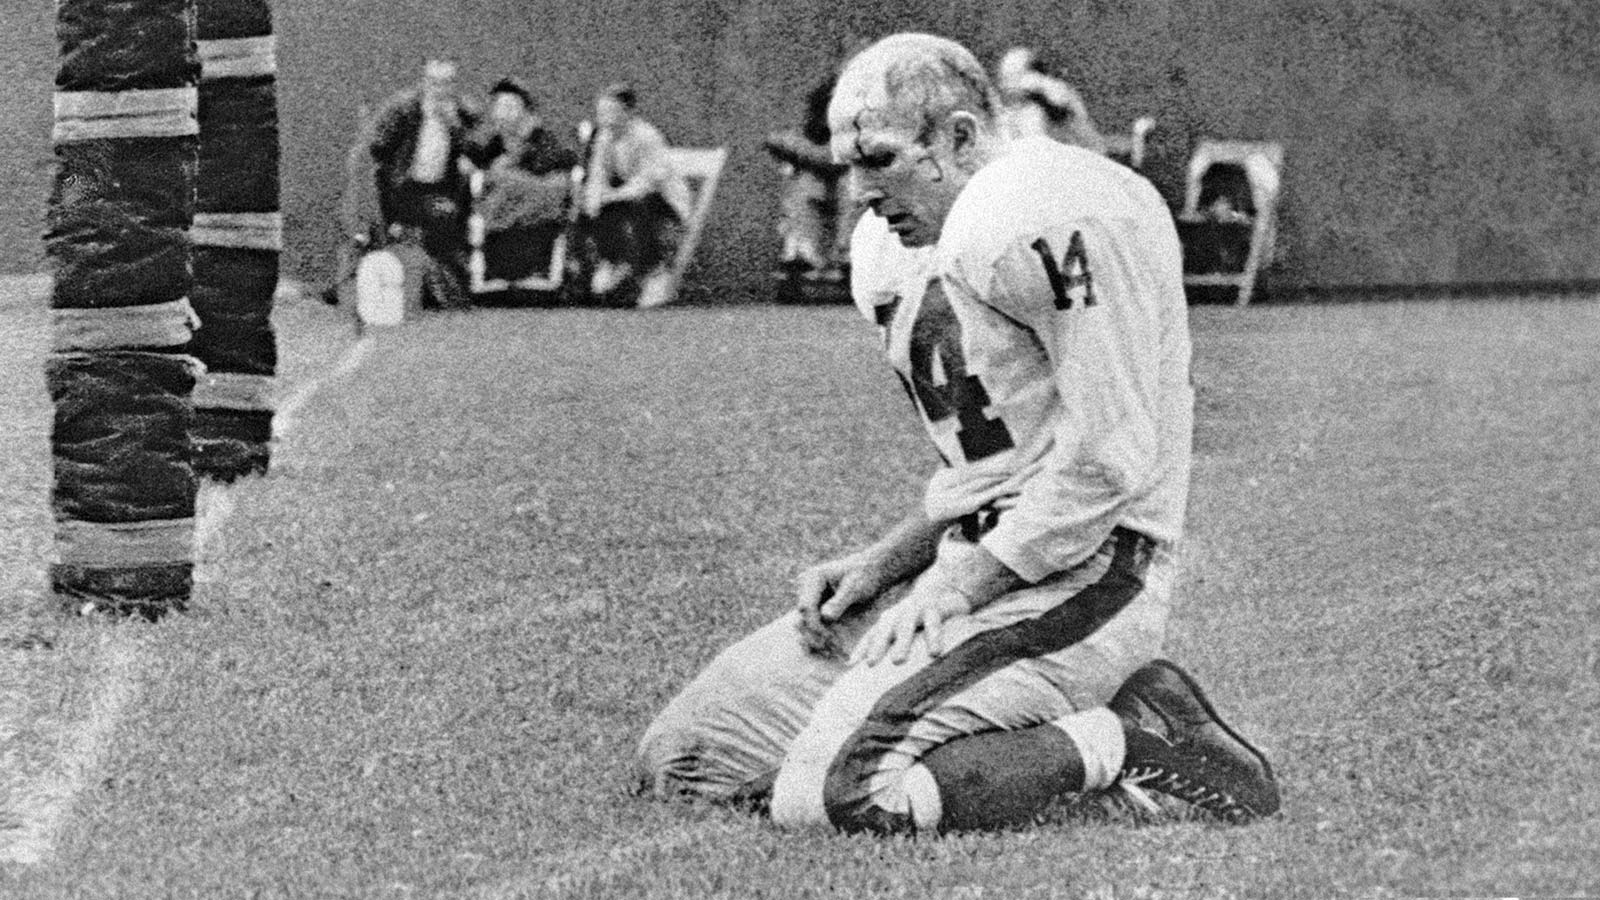 Former LSU QB YA Tittle dies at age of 90